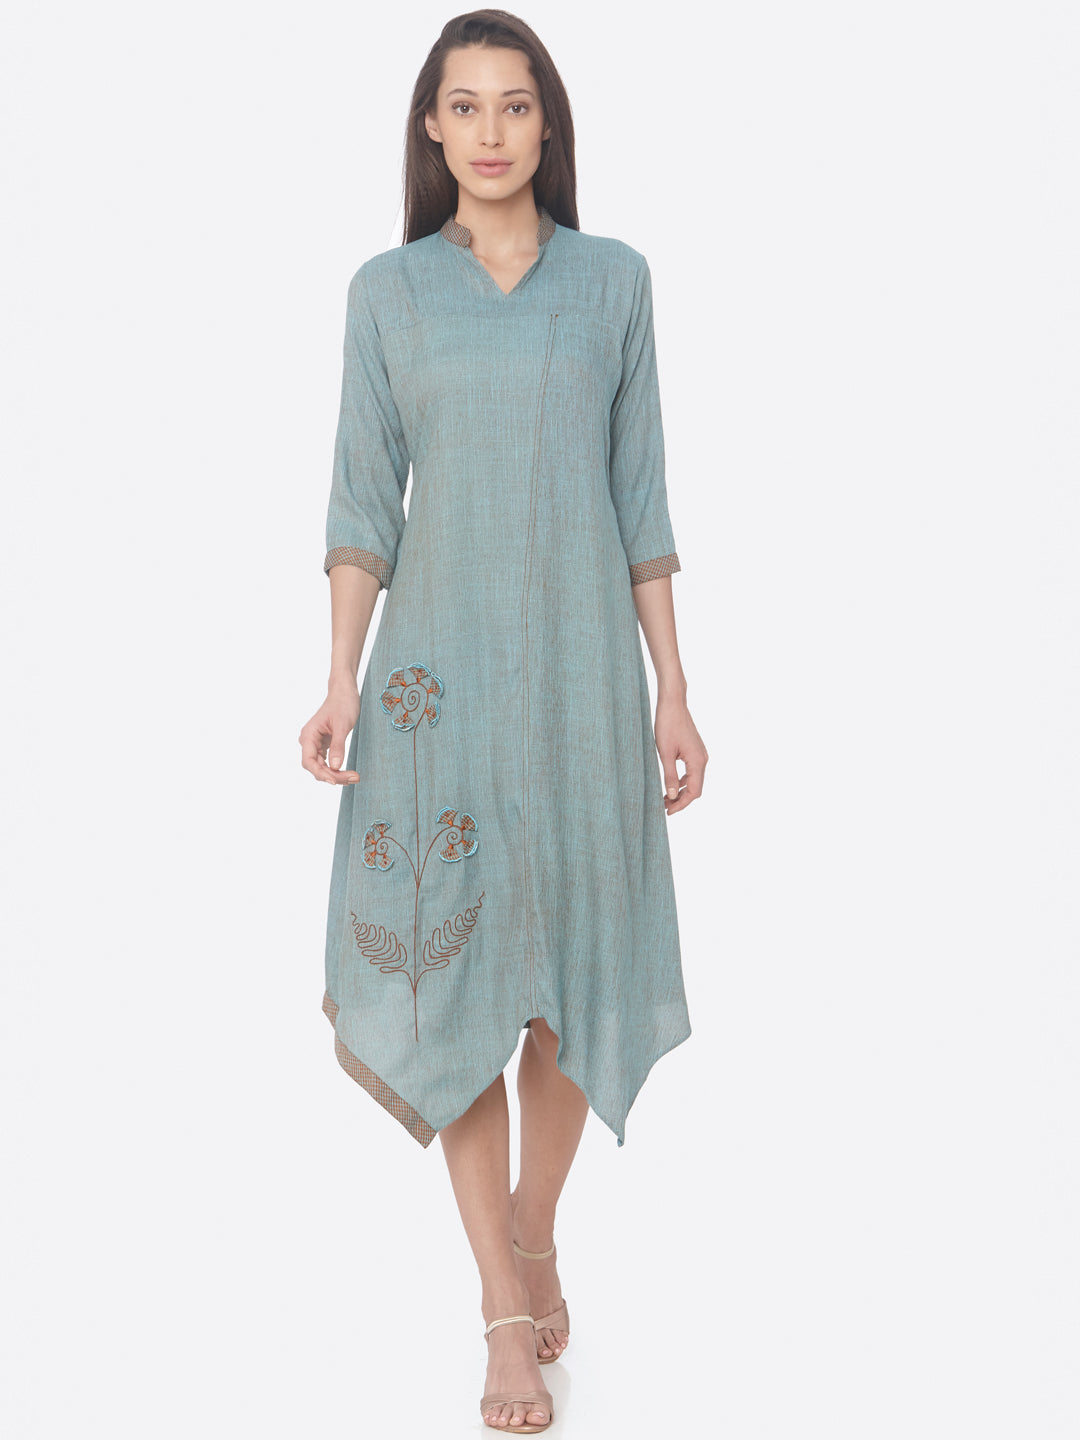 Turquoise Solid Two Tone Rayon A-Line Dress